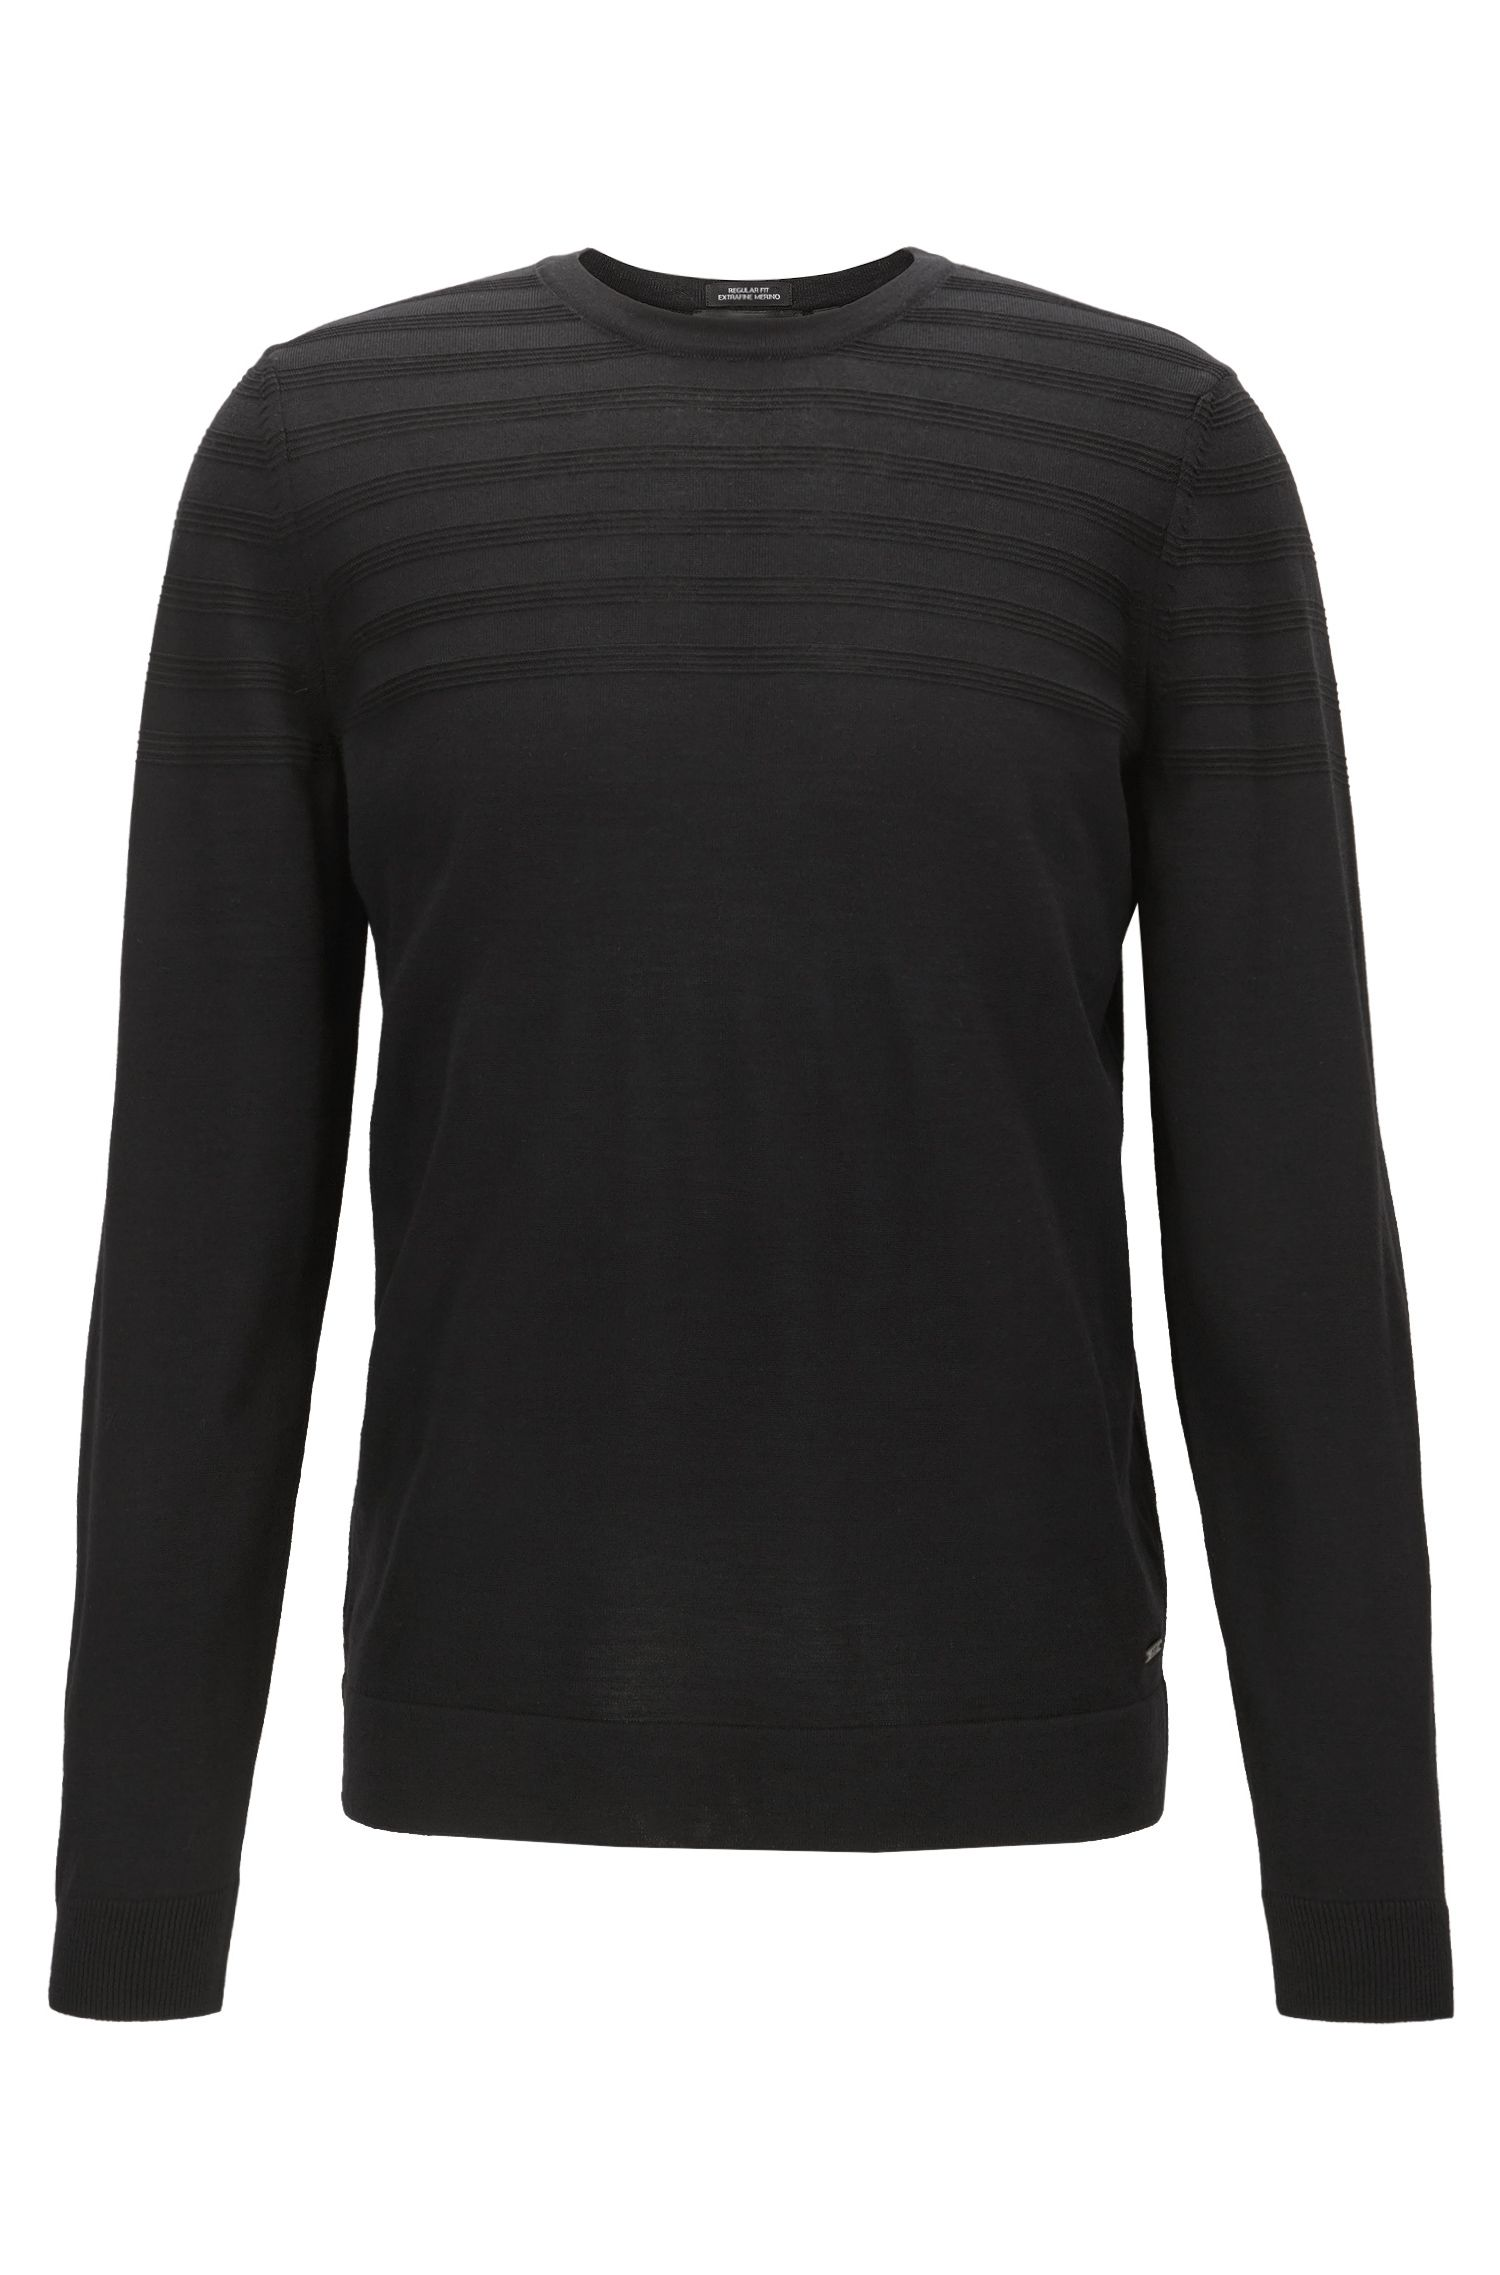 Crew-neck wool-blend sweater with structured detail, Black